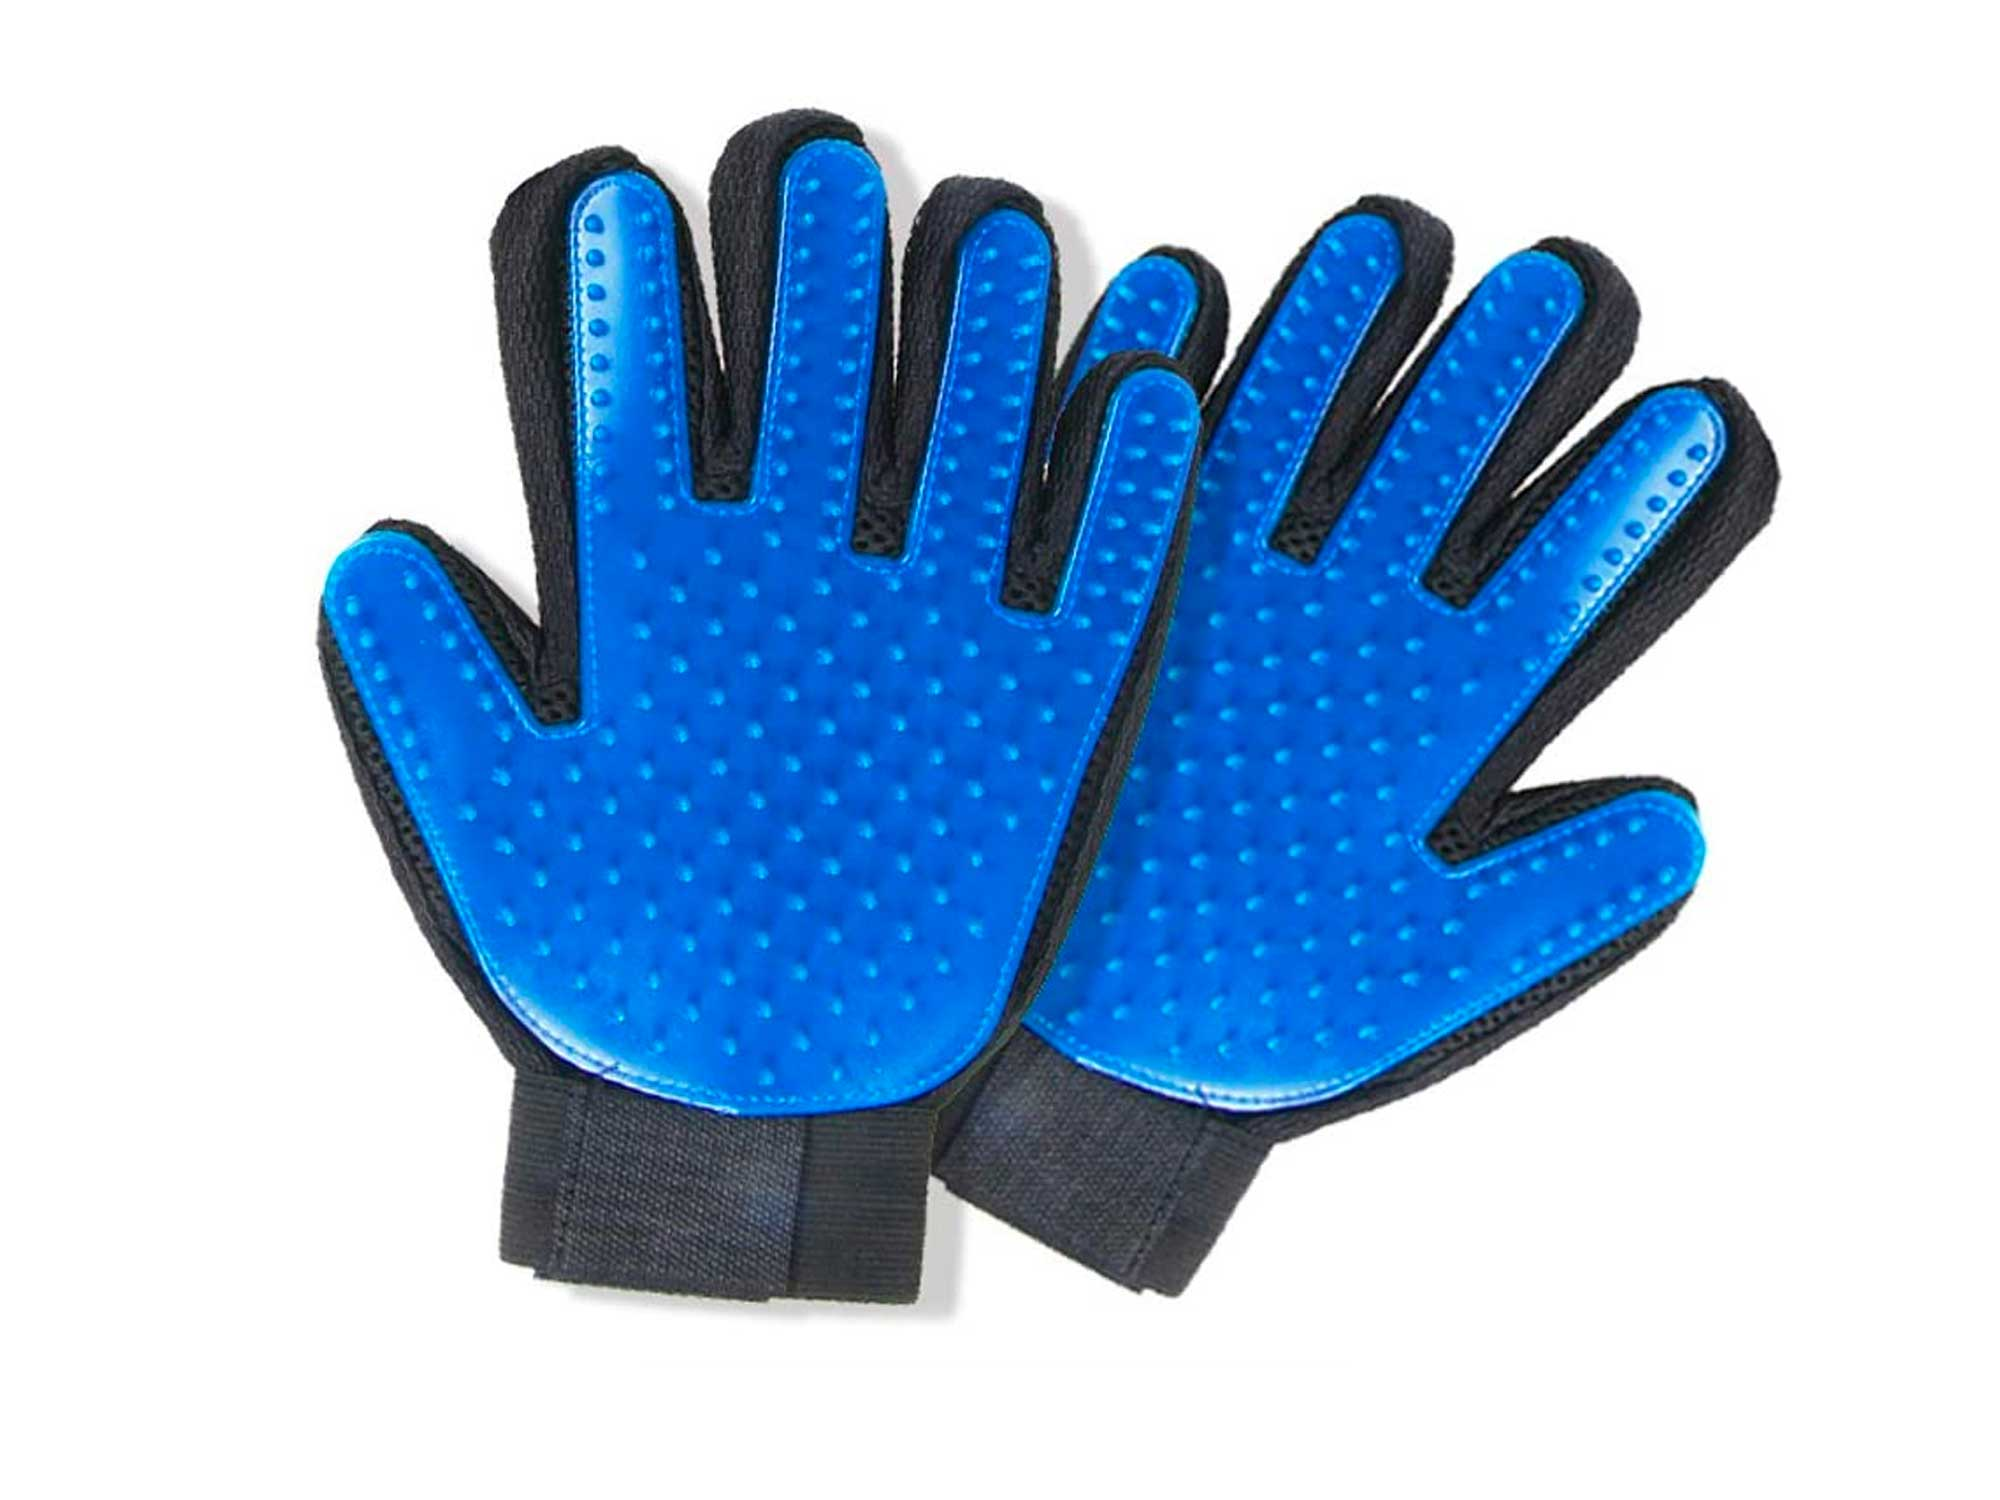 STARROAD-TIM Pet Grooming Glove Hair Remover Brush Gentle Deshedding Efficient Pet Mitt Pet Massage Gloves Left & Right Hand Draw Dogs Cats Horses Long Short Fur (1Pair Left & Right Hand